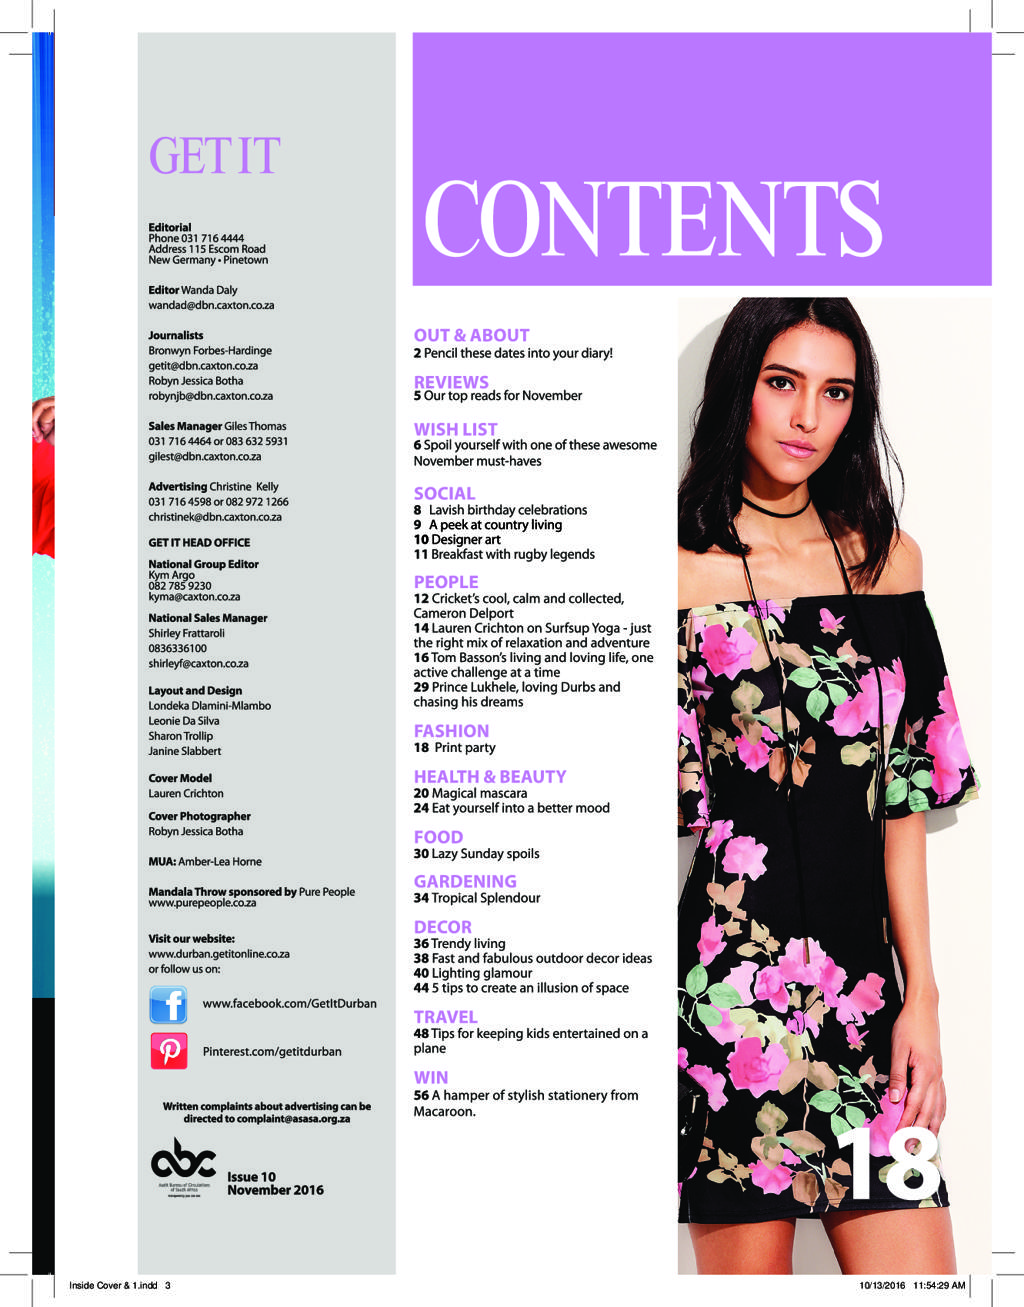 durban-get-it-magazine-november-2016-epapers-page-3